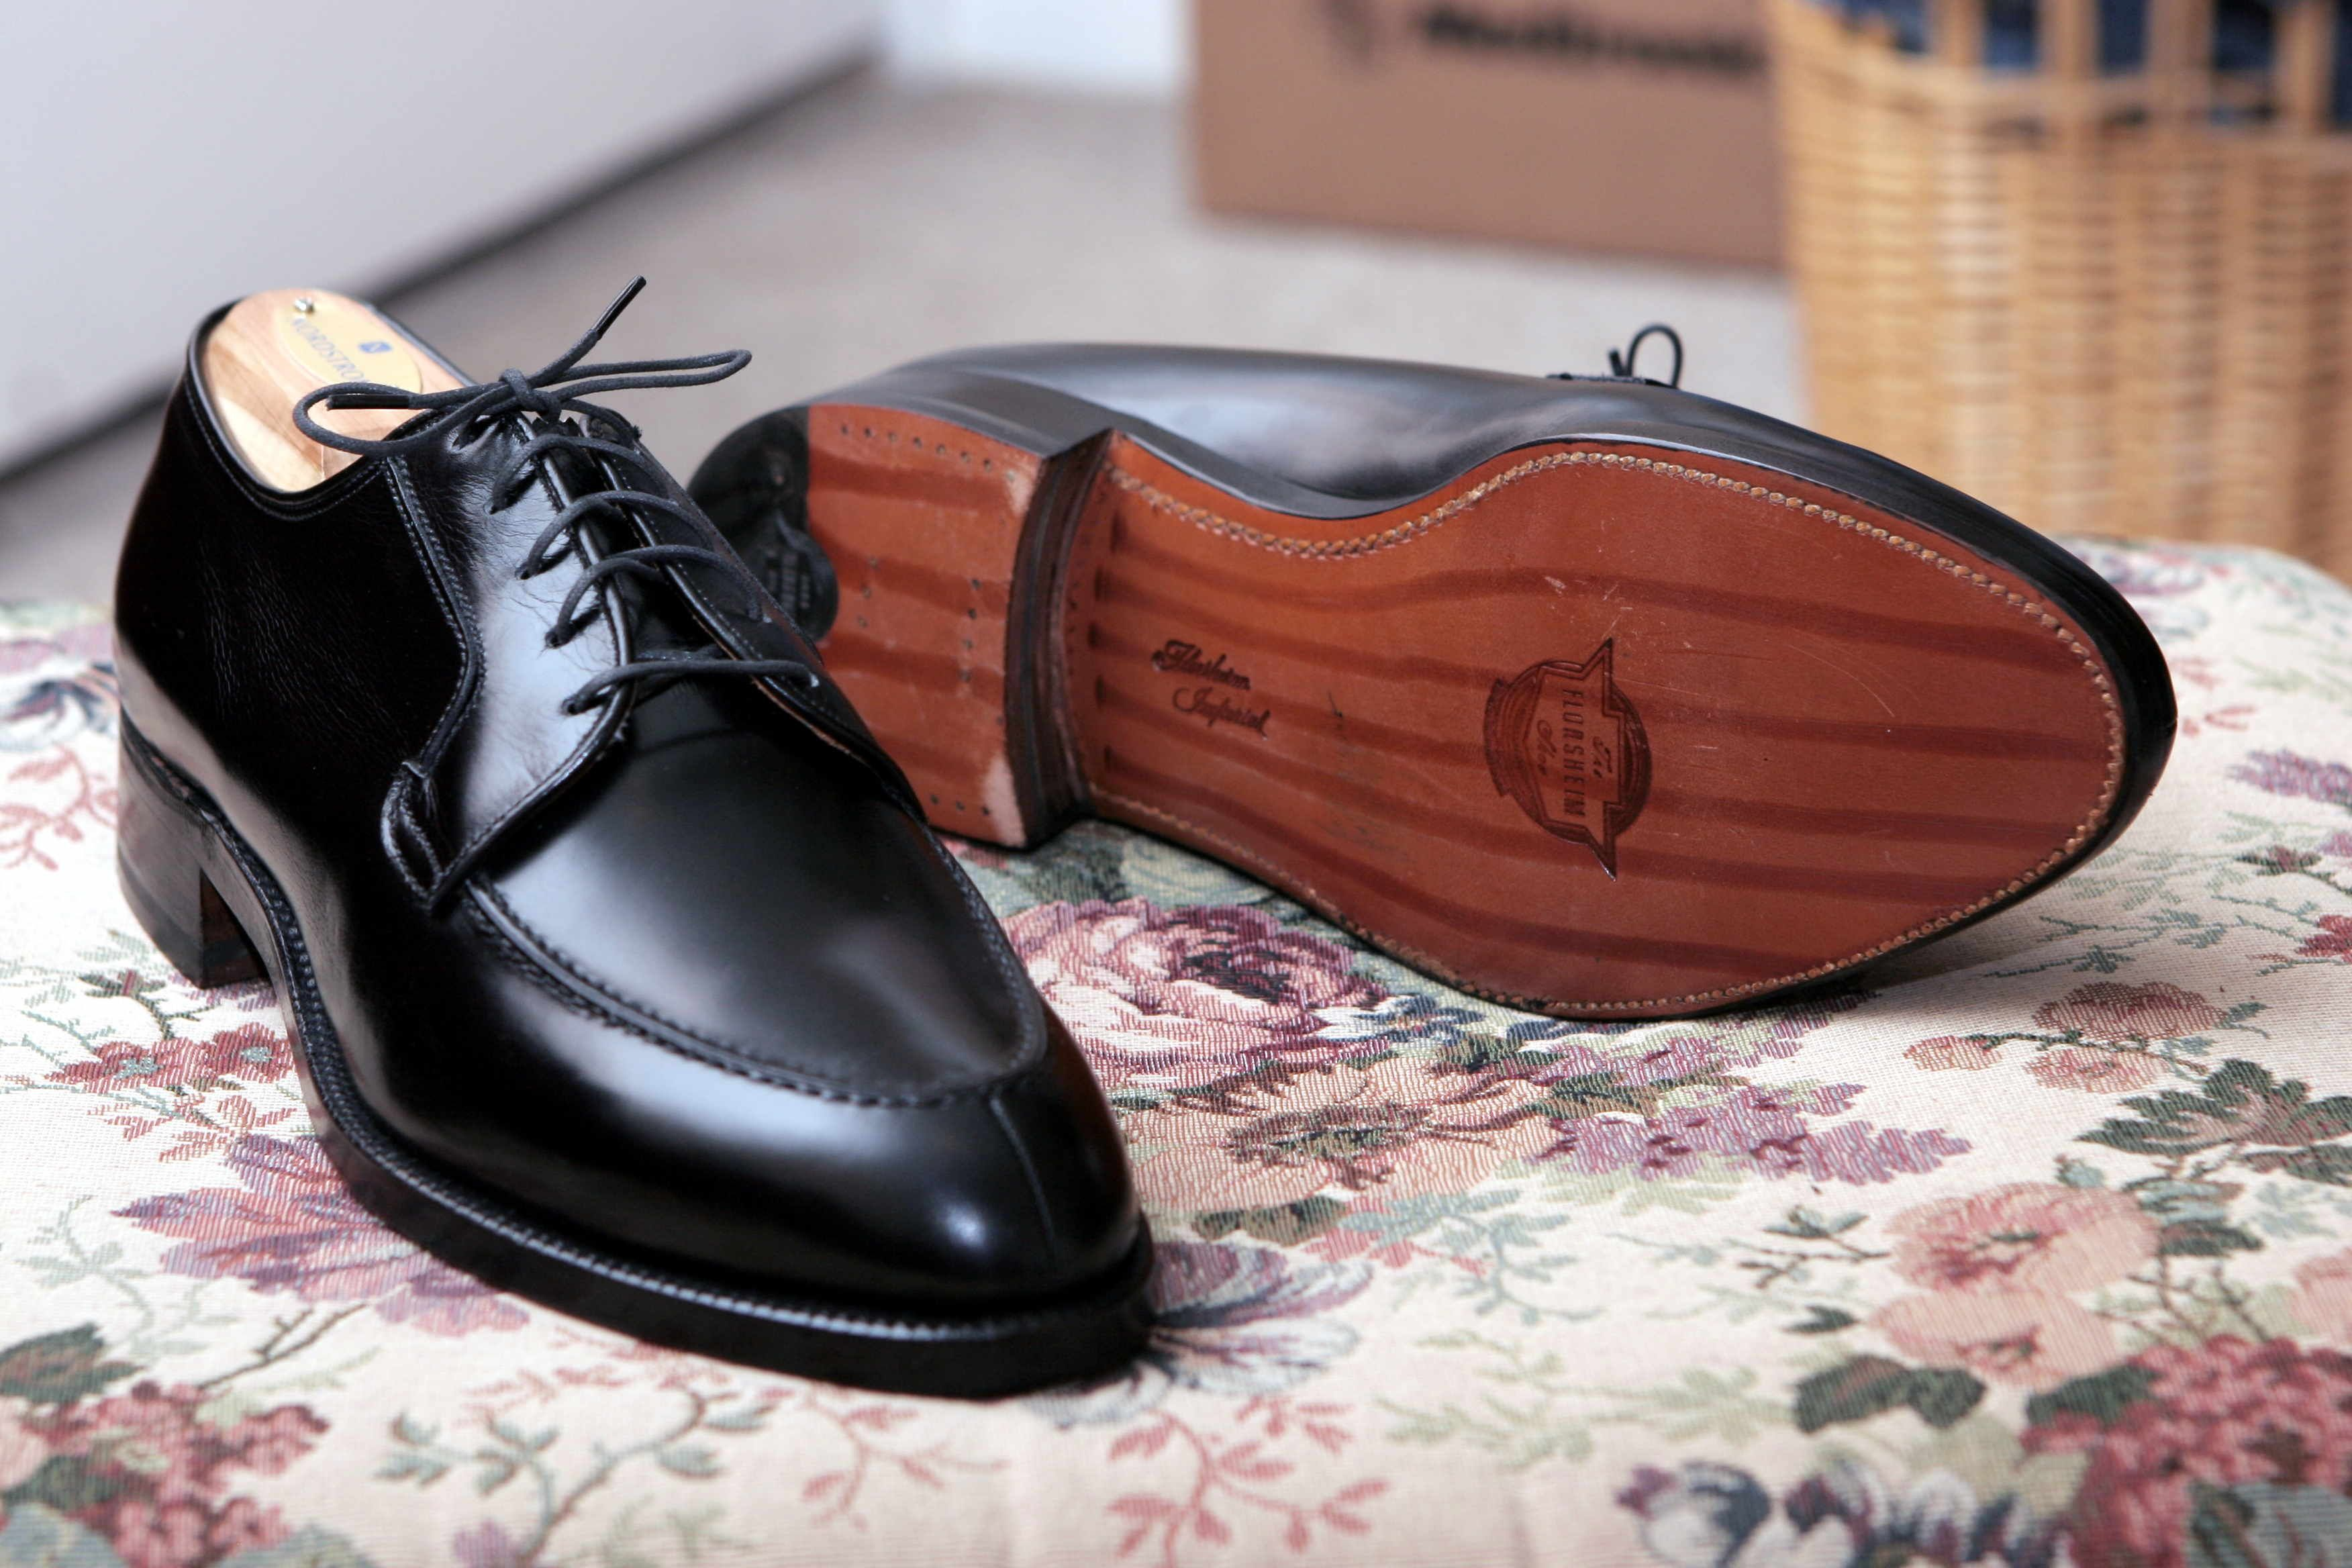 nicest dress shoes